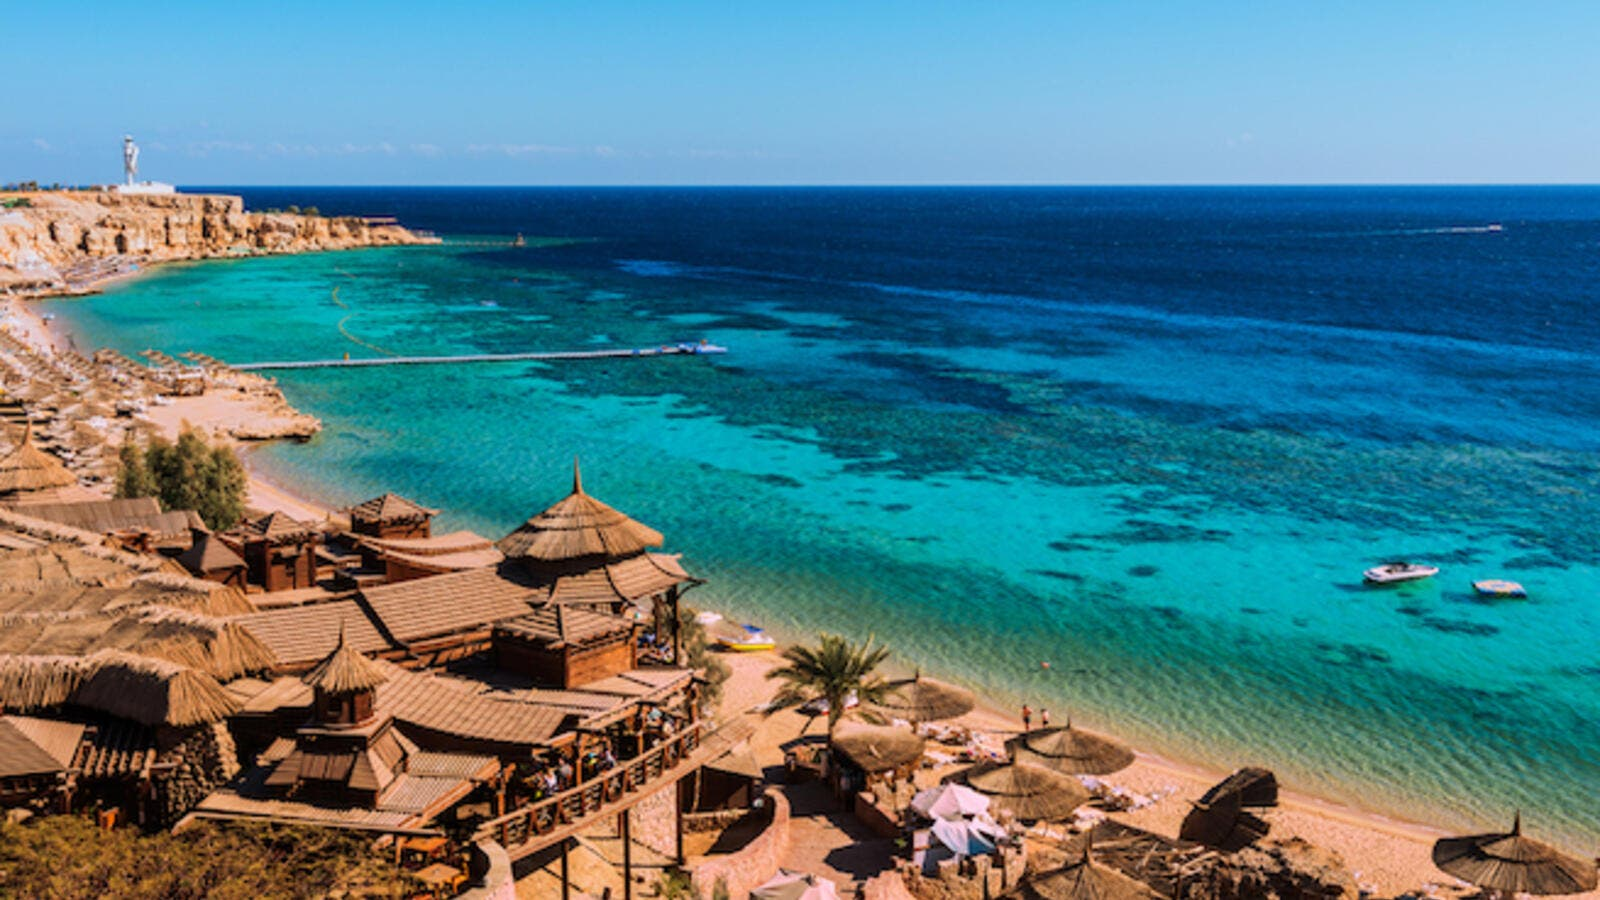 The coastal cities lead the market in occupancy in Q3 2018, however, Sharm El Sheikh and Hurghada have not achieved the high Y-o-Y gains seen in Q3 2017. (Shutterstock)